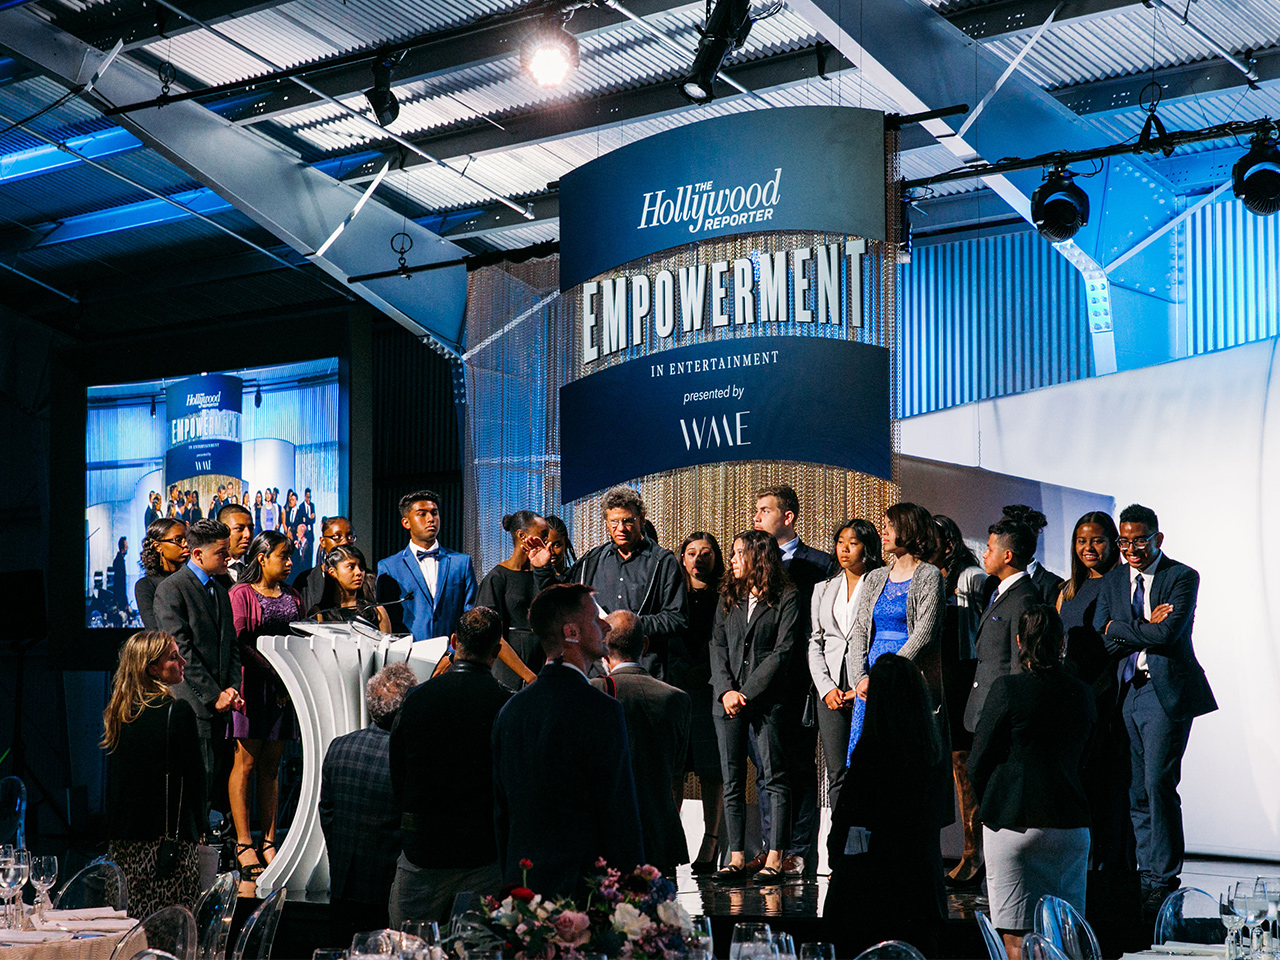 The Hollywood Reporter Empowerment in Entertainment AgenC